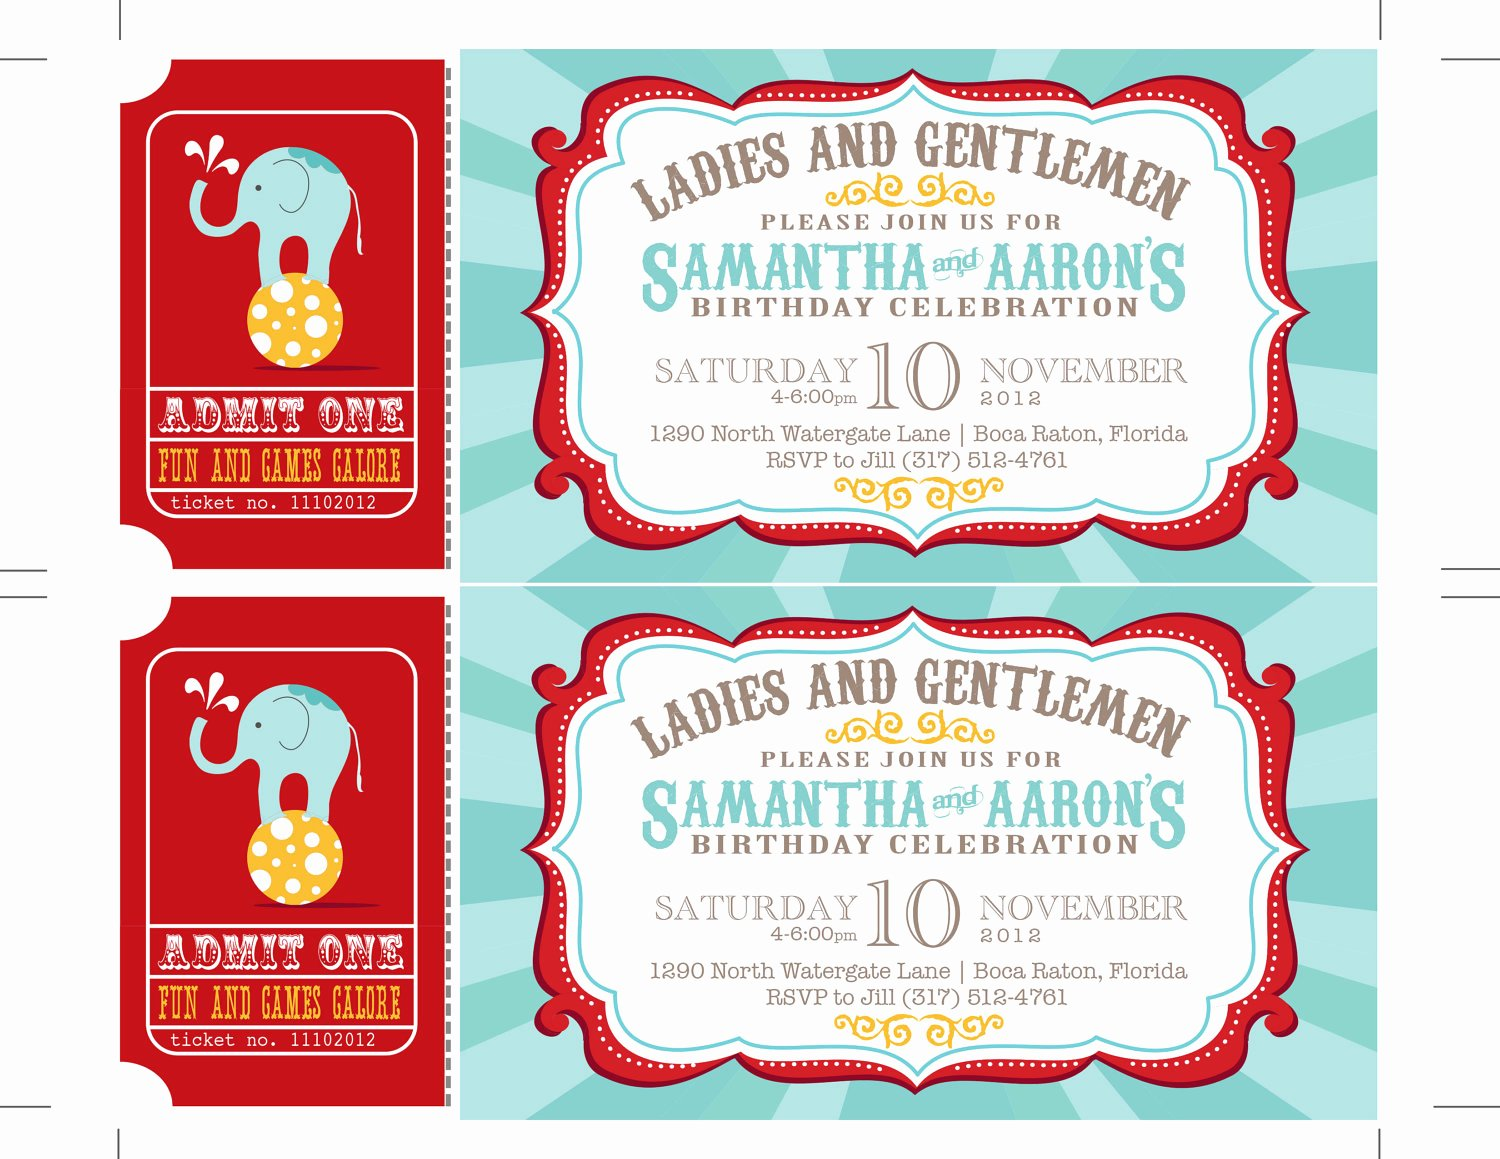 Carnival Ticket Invitation Template Free Fresh Reserved Carnival Invitations Circus Invitations Ticket